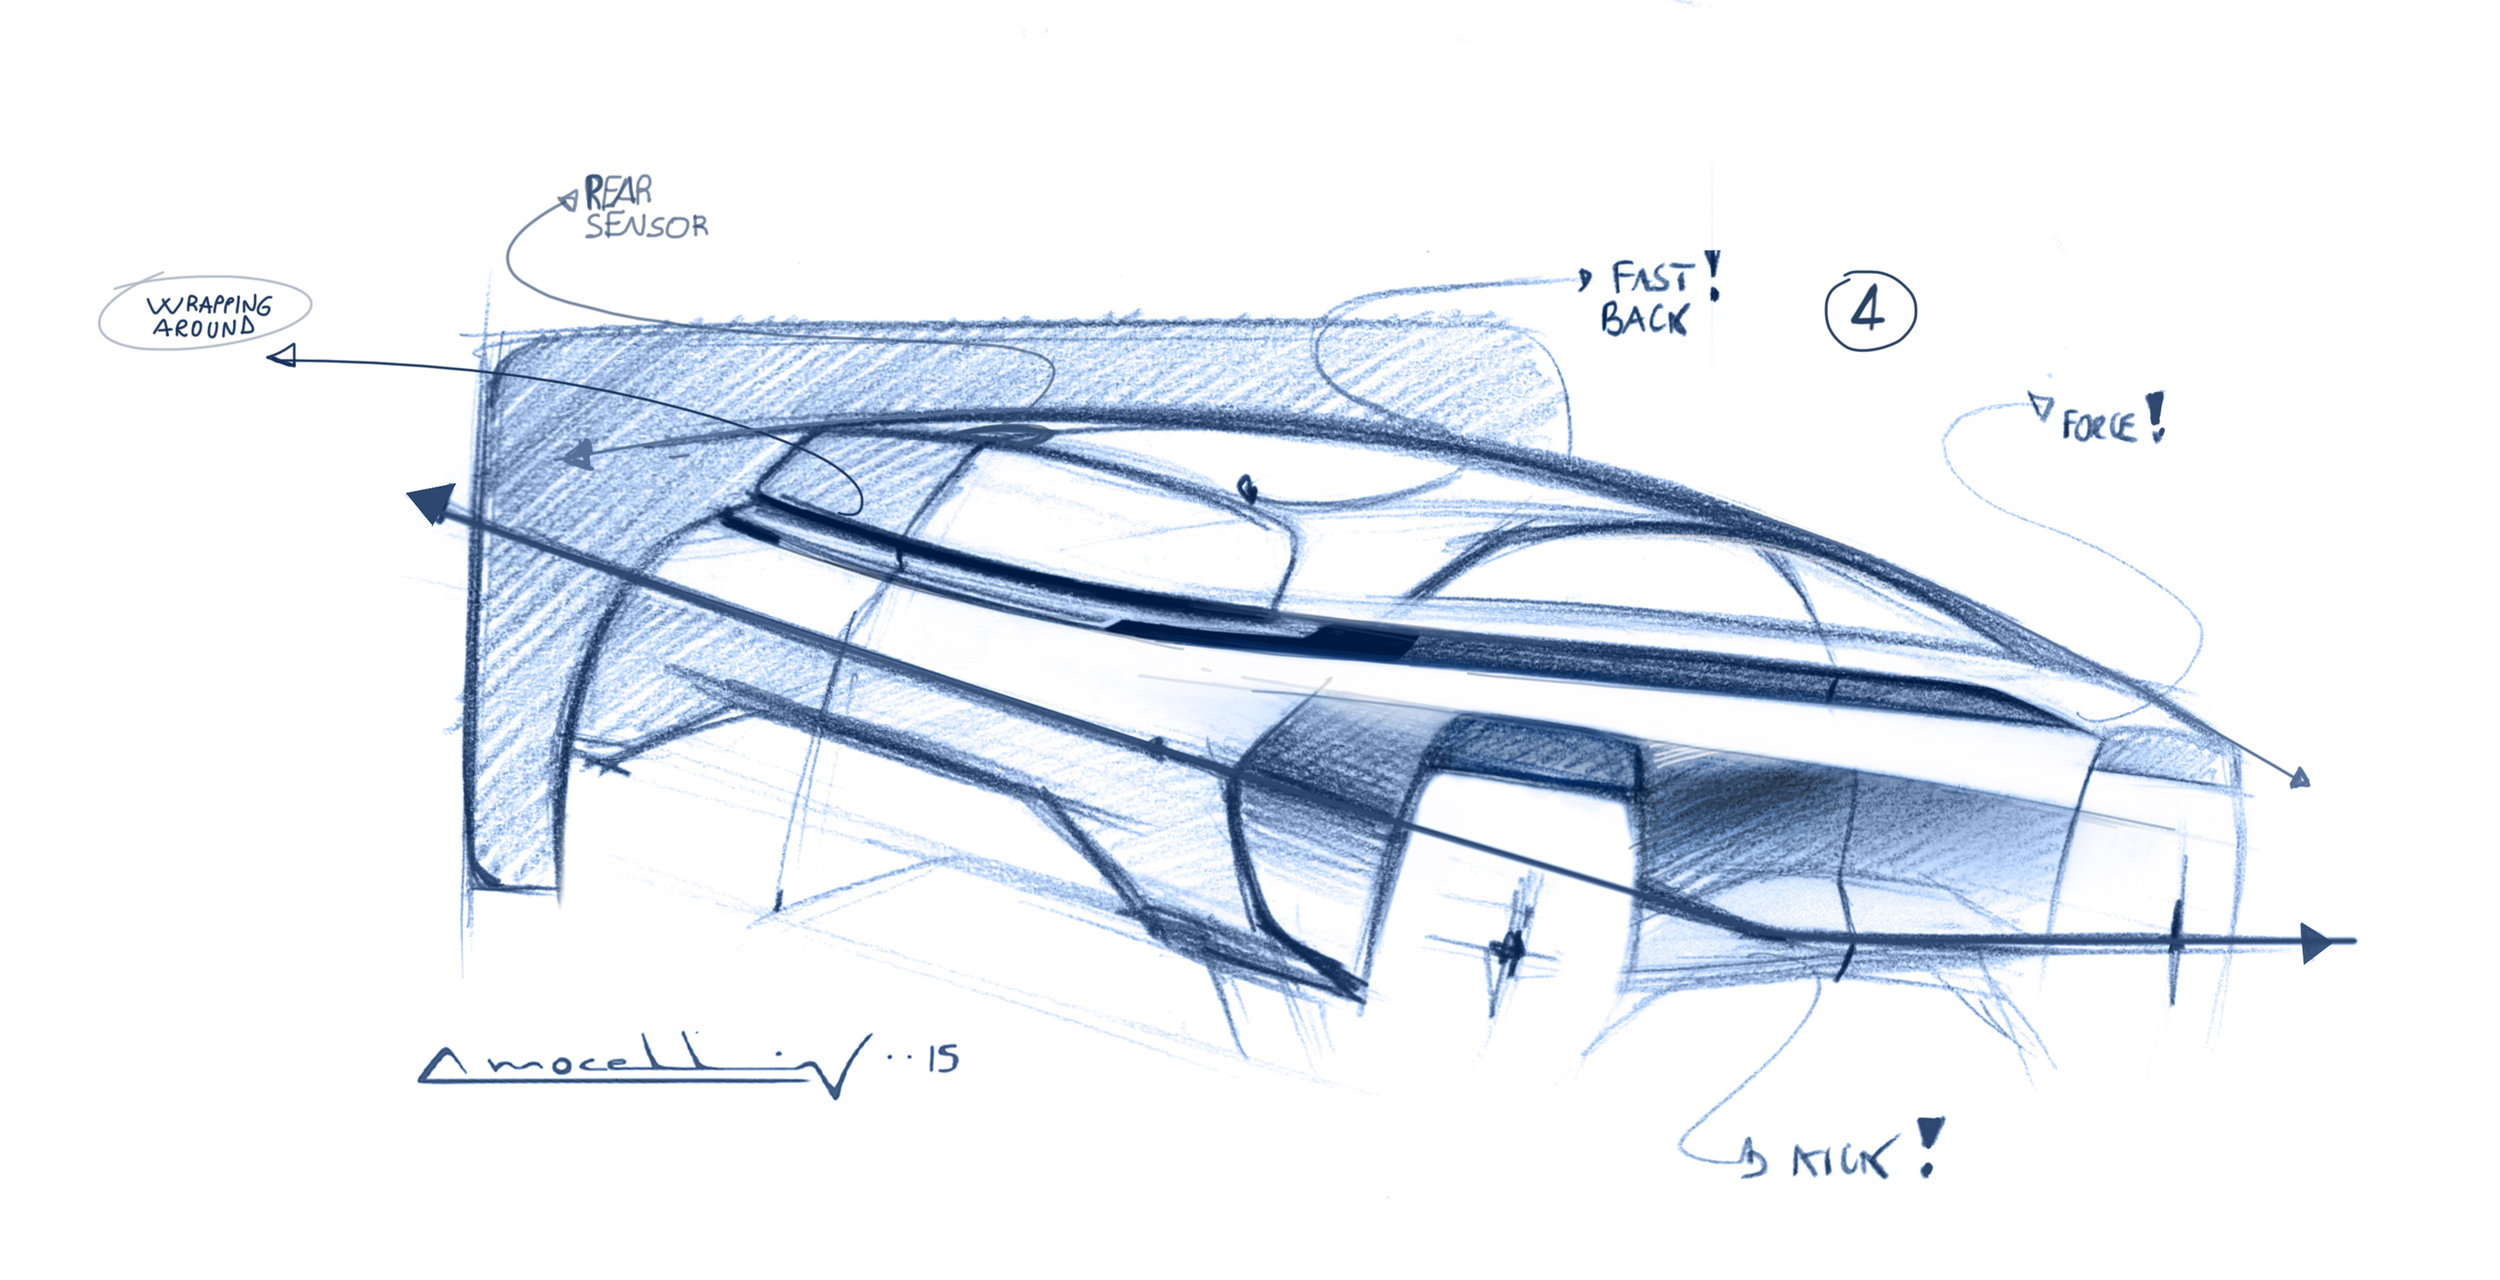 the theme of the rear is based on the aerodynamic 'Kammtail'' principle